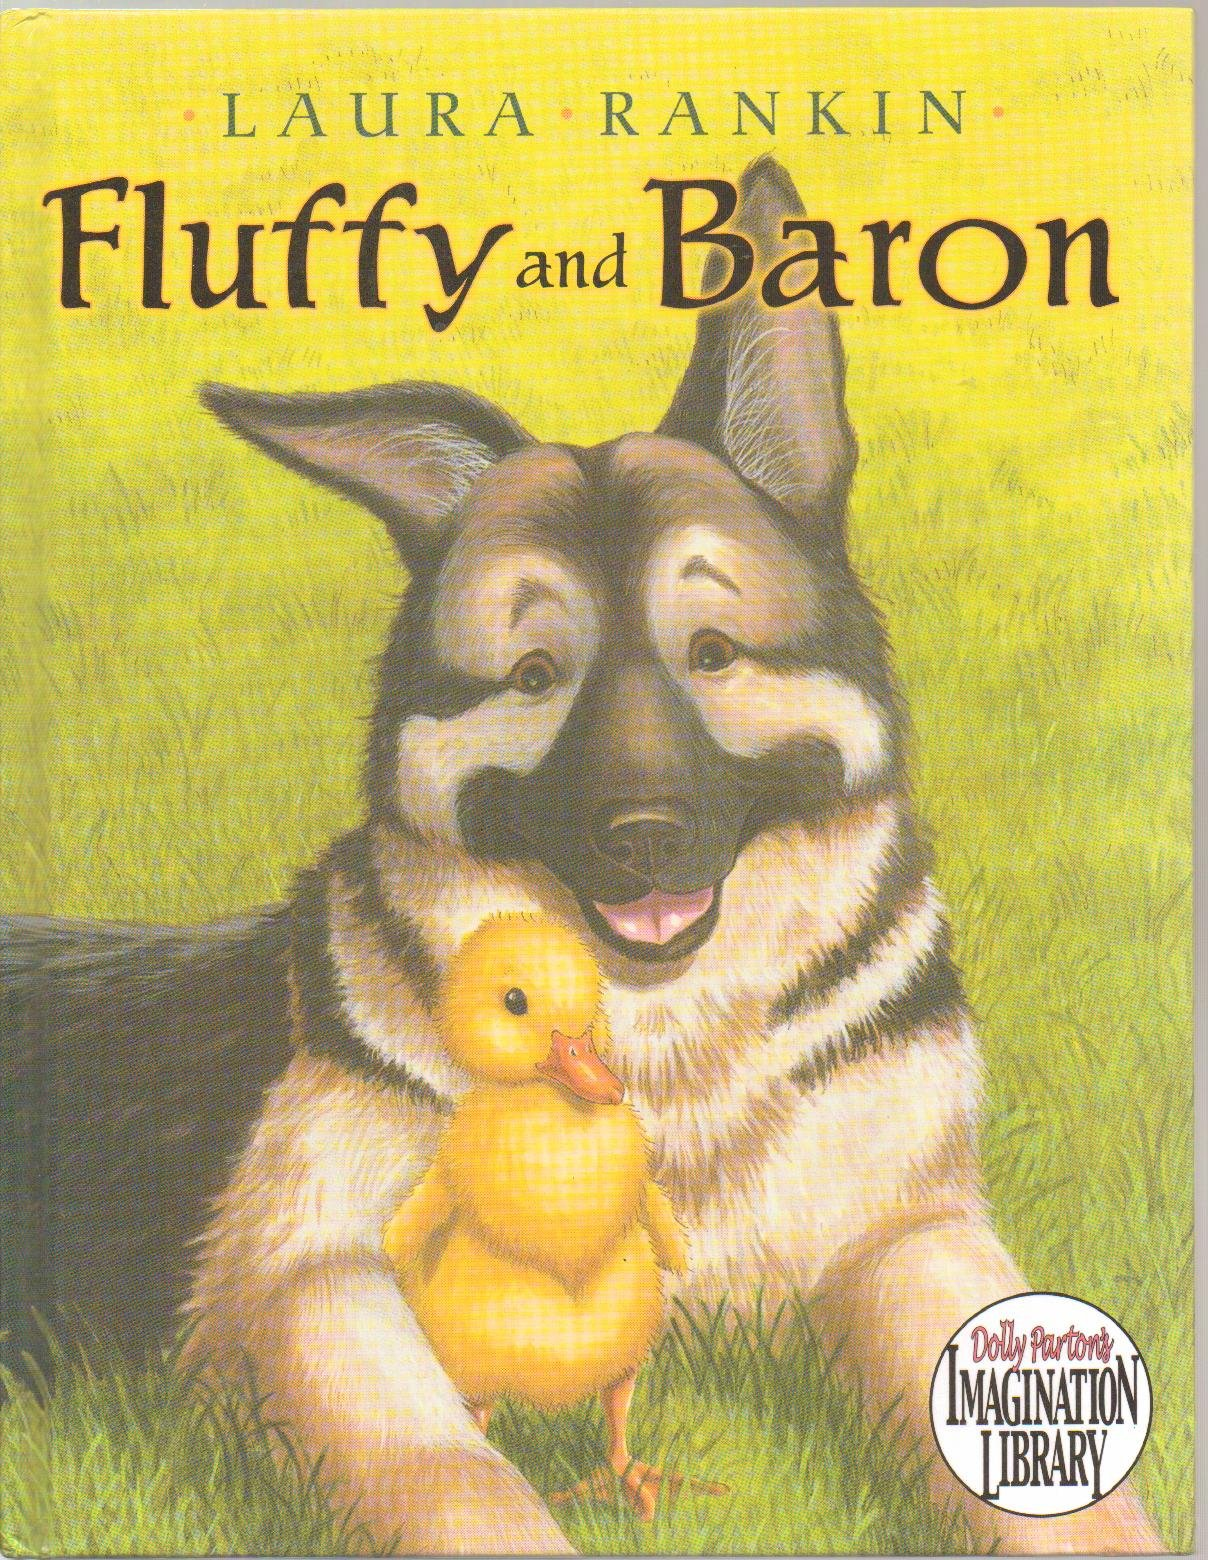 Download Fluffy and Baron - The Friendship Between a Duck, Fluffy and a Dog Baron From Their First Meeting When Fluffy Is a Duckling Through When She Has Babies of Her Own - Hardcover - First Edition, 2nd Printing 2006 PDF